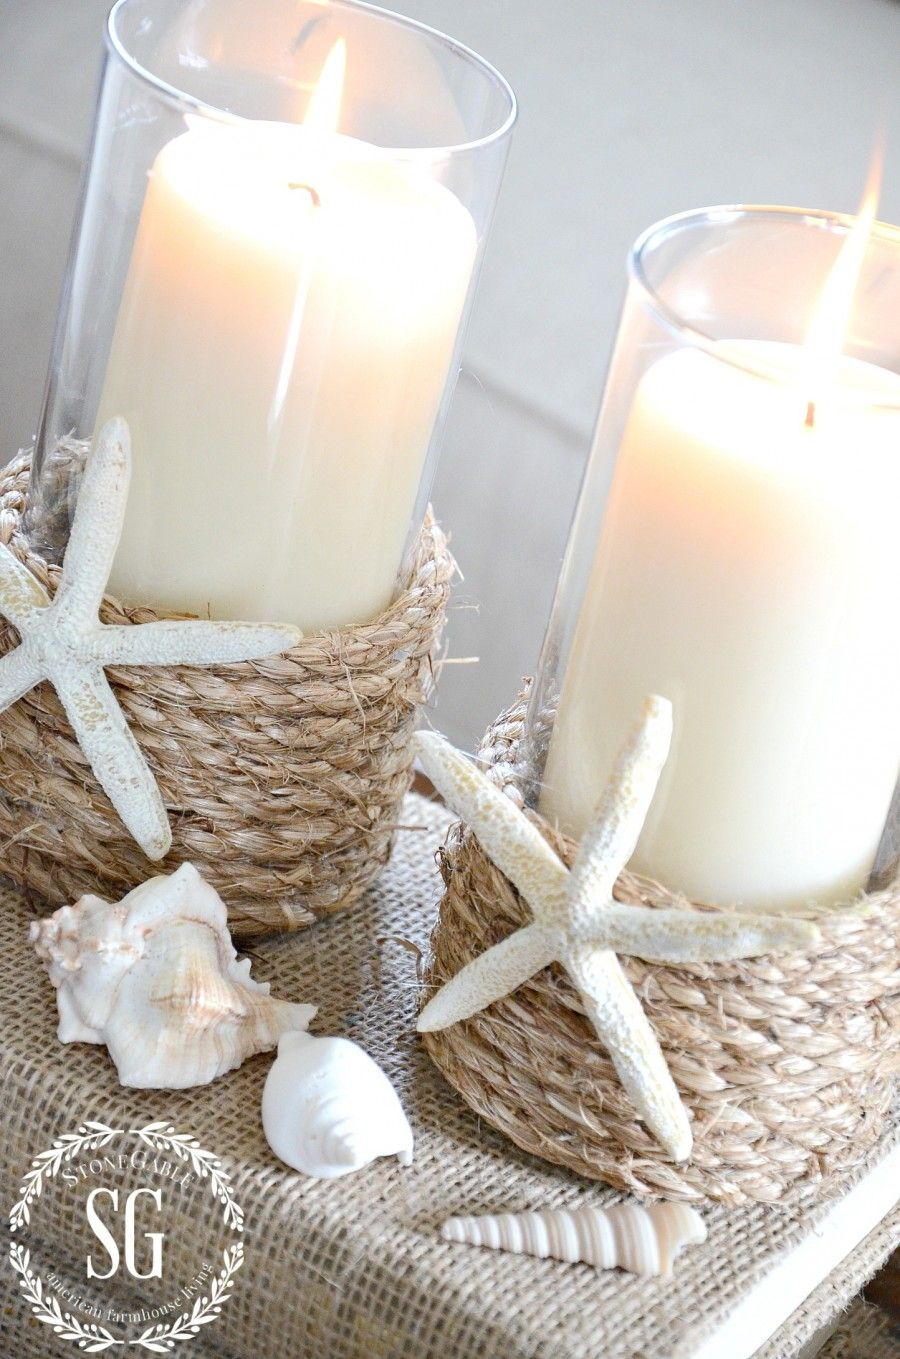 Photo of White beach house candles